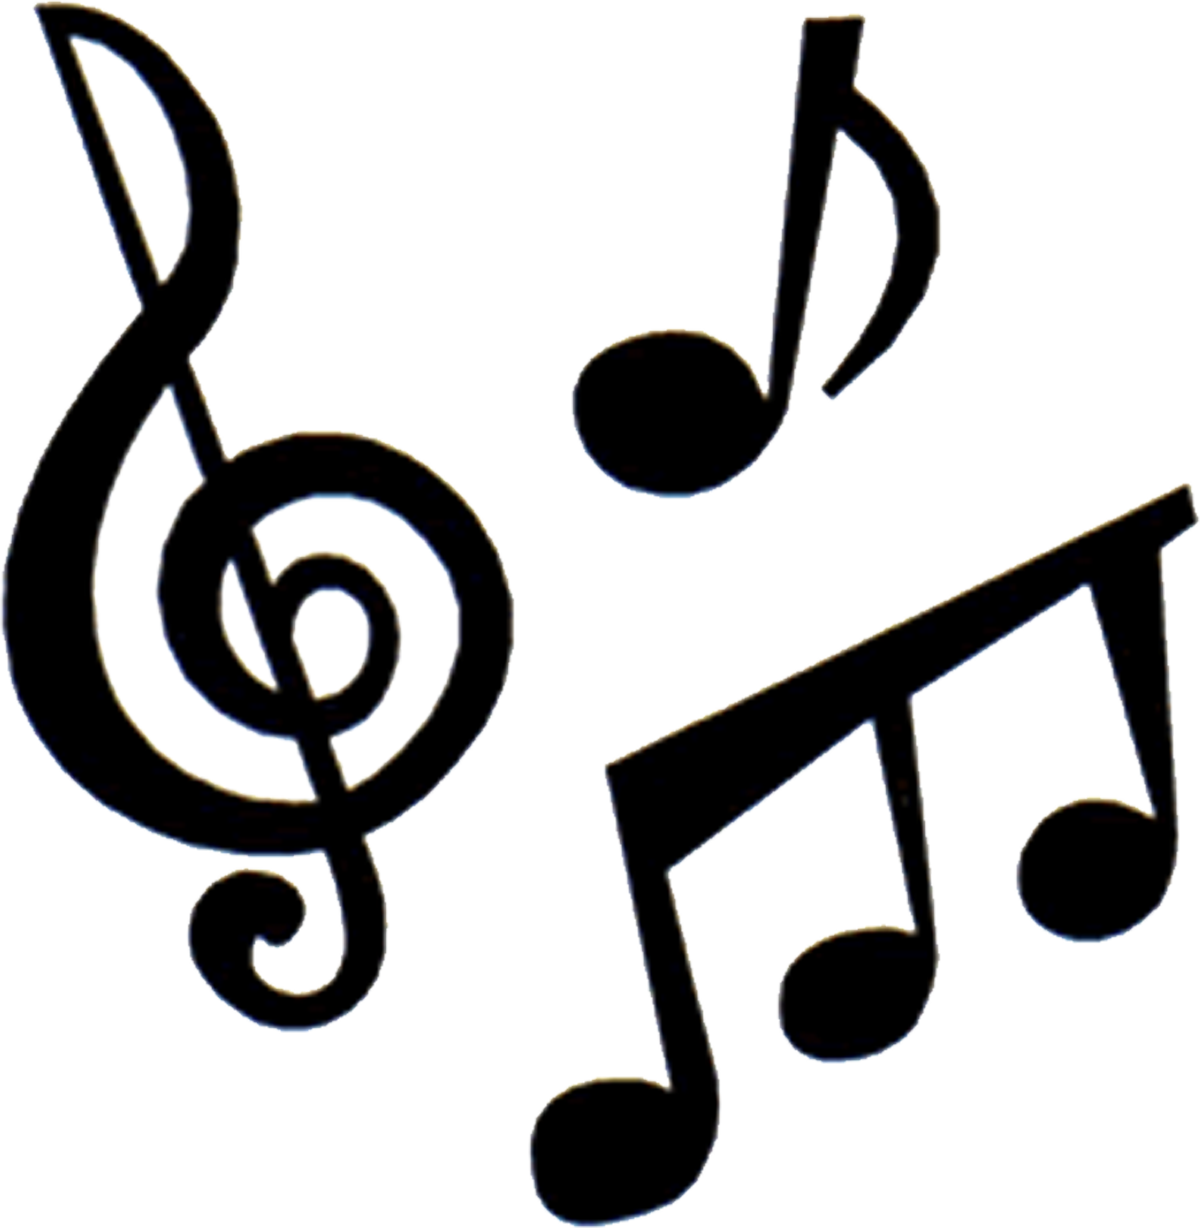 School band clipart banner royalty free library Music Symbol Silhouette at GetDrawings.com | Free for personal use ... banner royalty free library